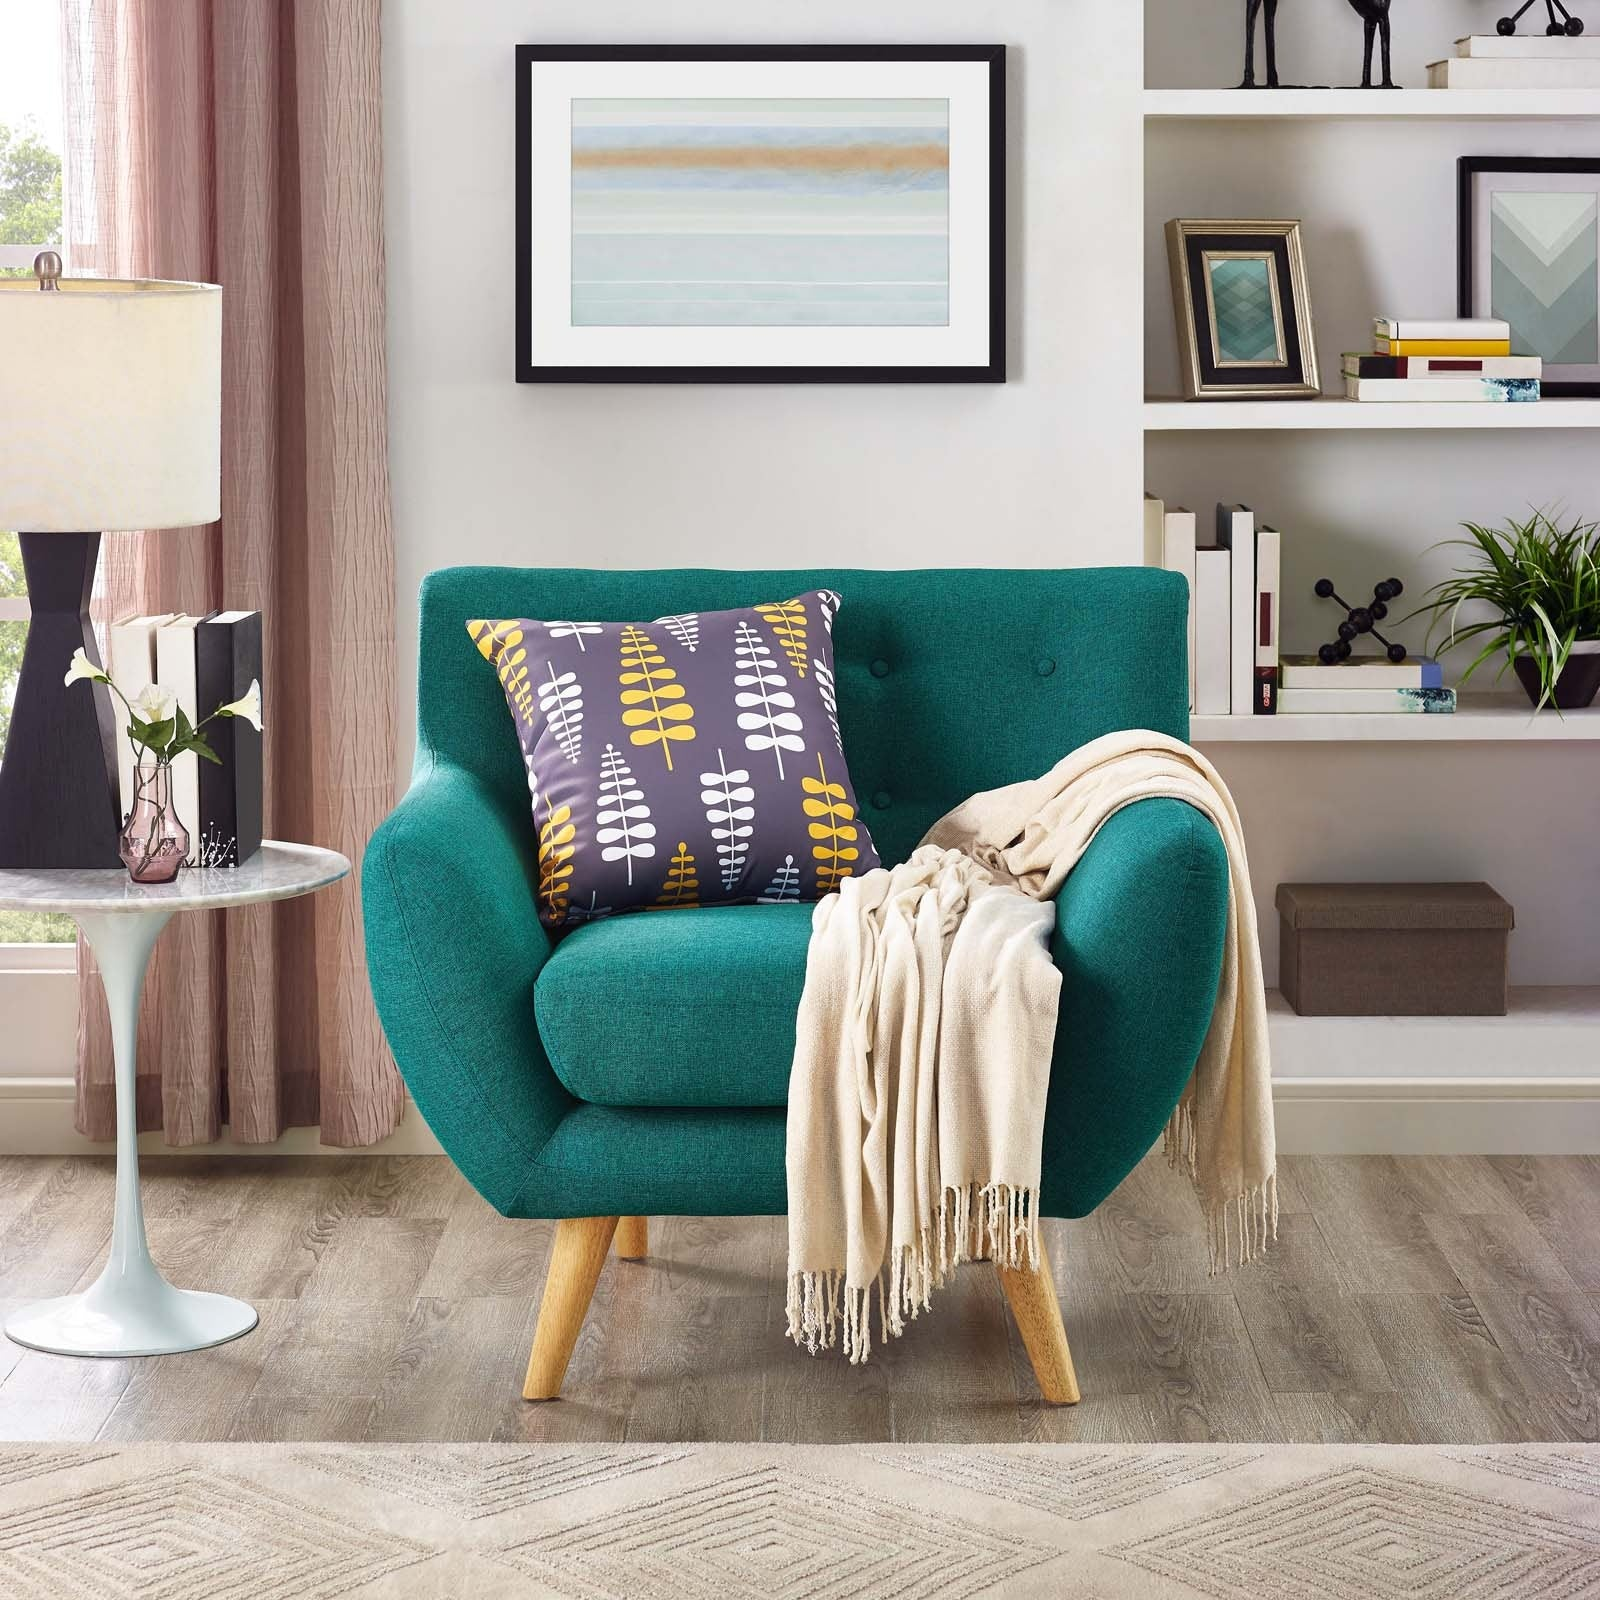 Remark Upholstered Fabric Armchair - Teal